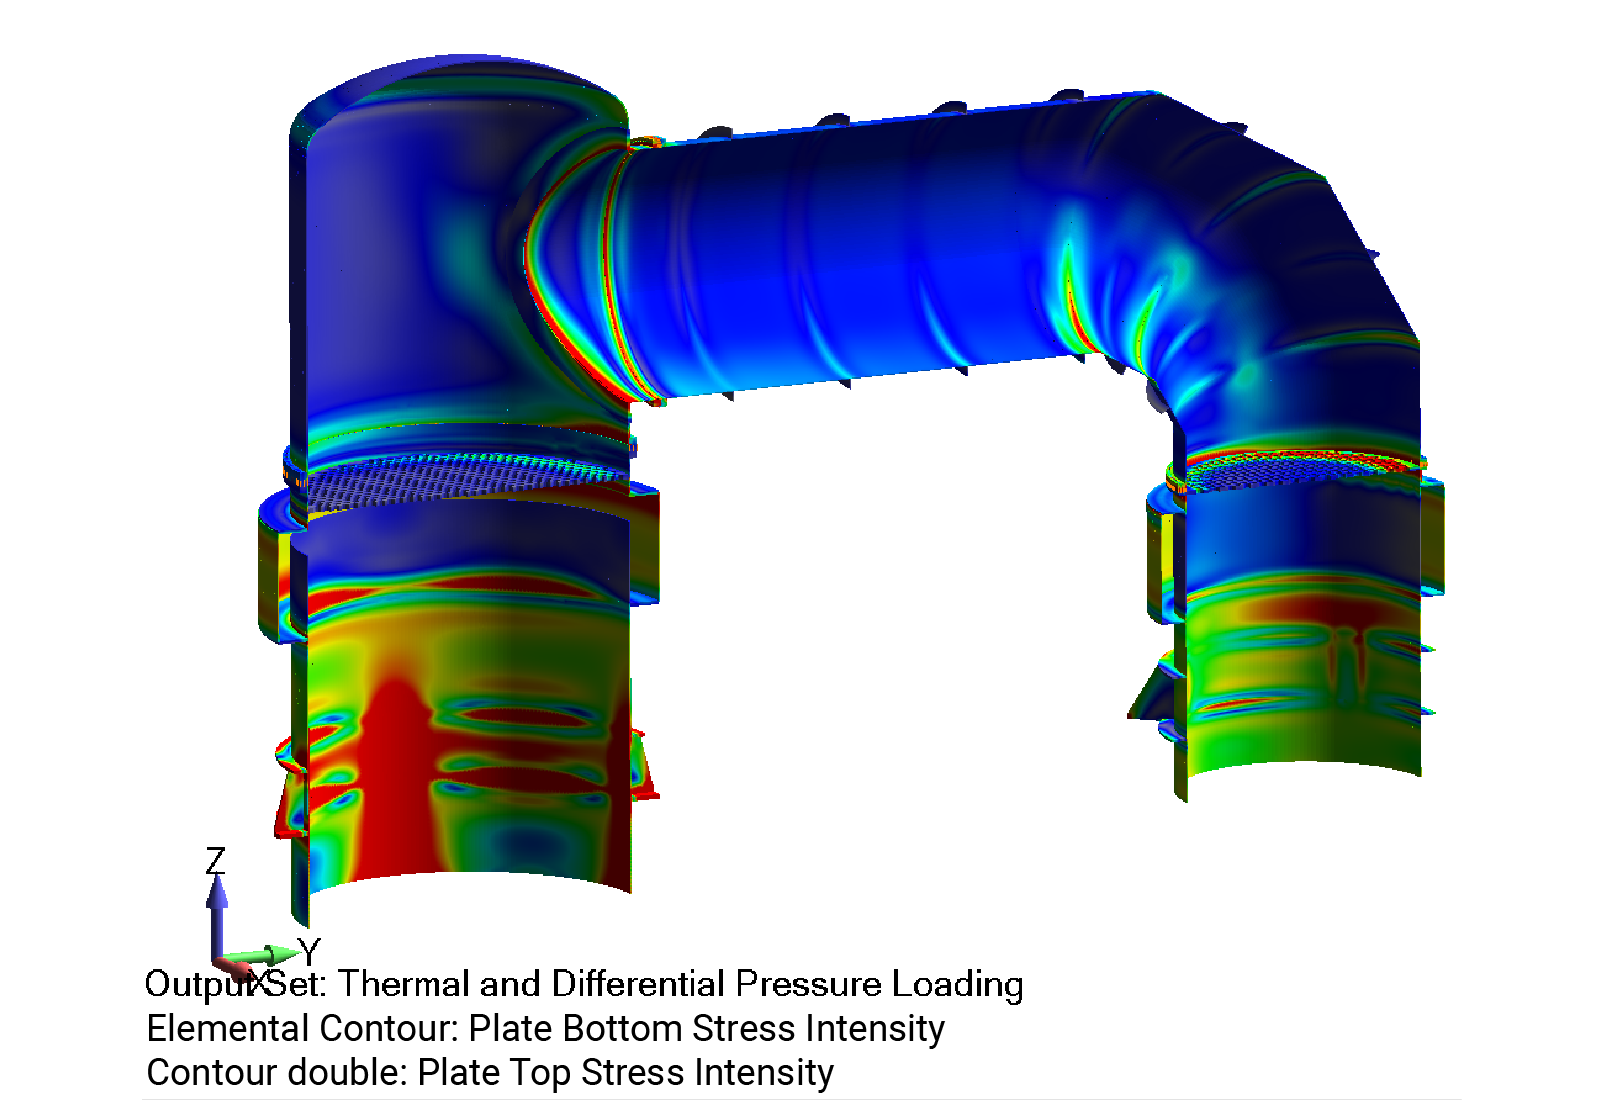 ASME Section VIII, Division 2 stress intensity contour plot over condenser - Predictive Engineering ASME BPVC Pressure Vessel Consulting Services